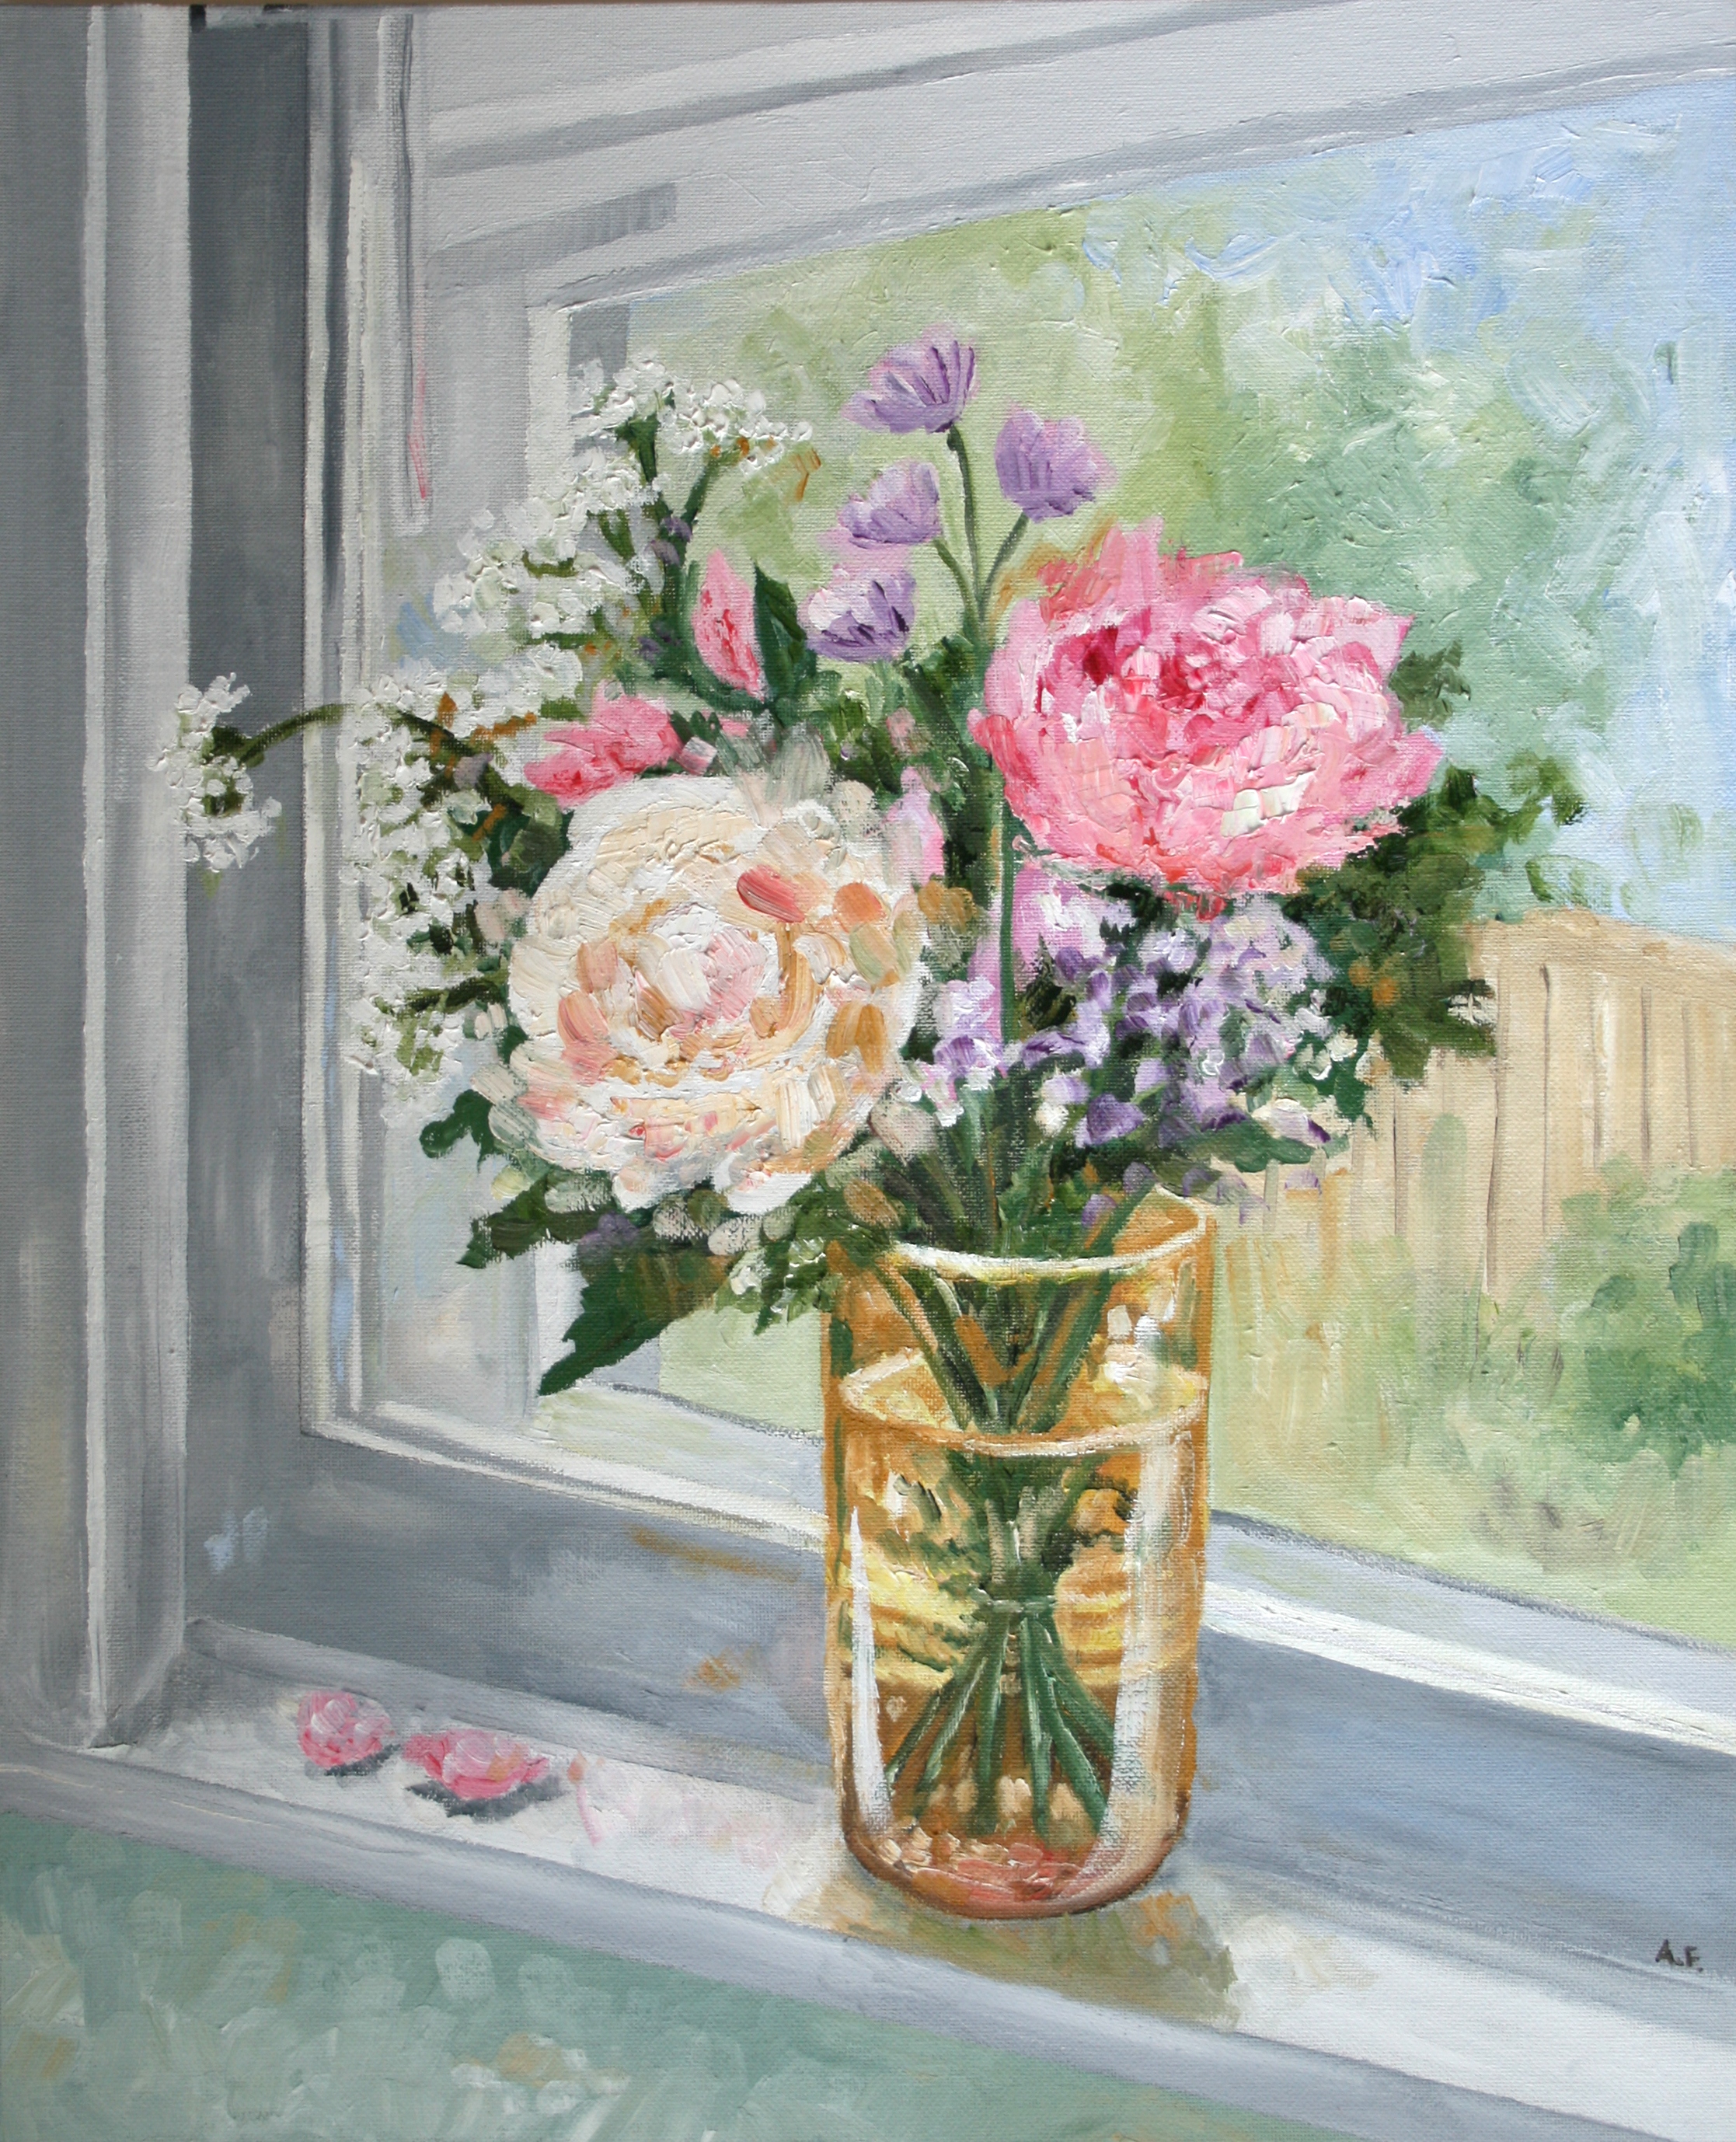 Triple Take: Kitchen Window Oil Painting (One of a set of three versions of this scene) - Amanda Farquharson